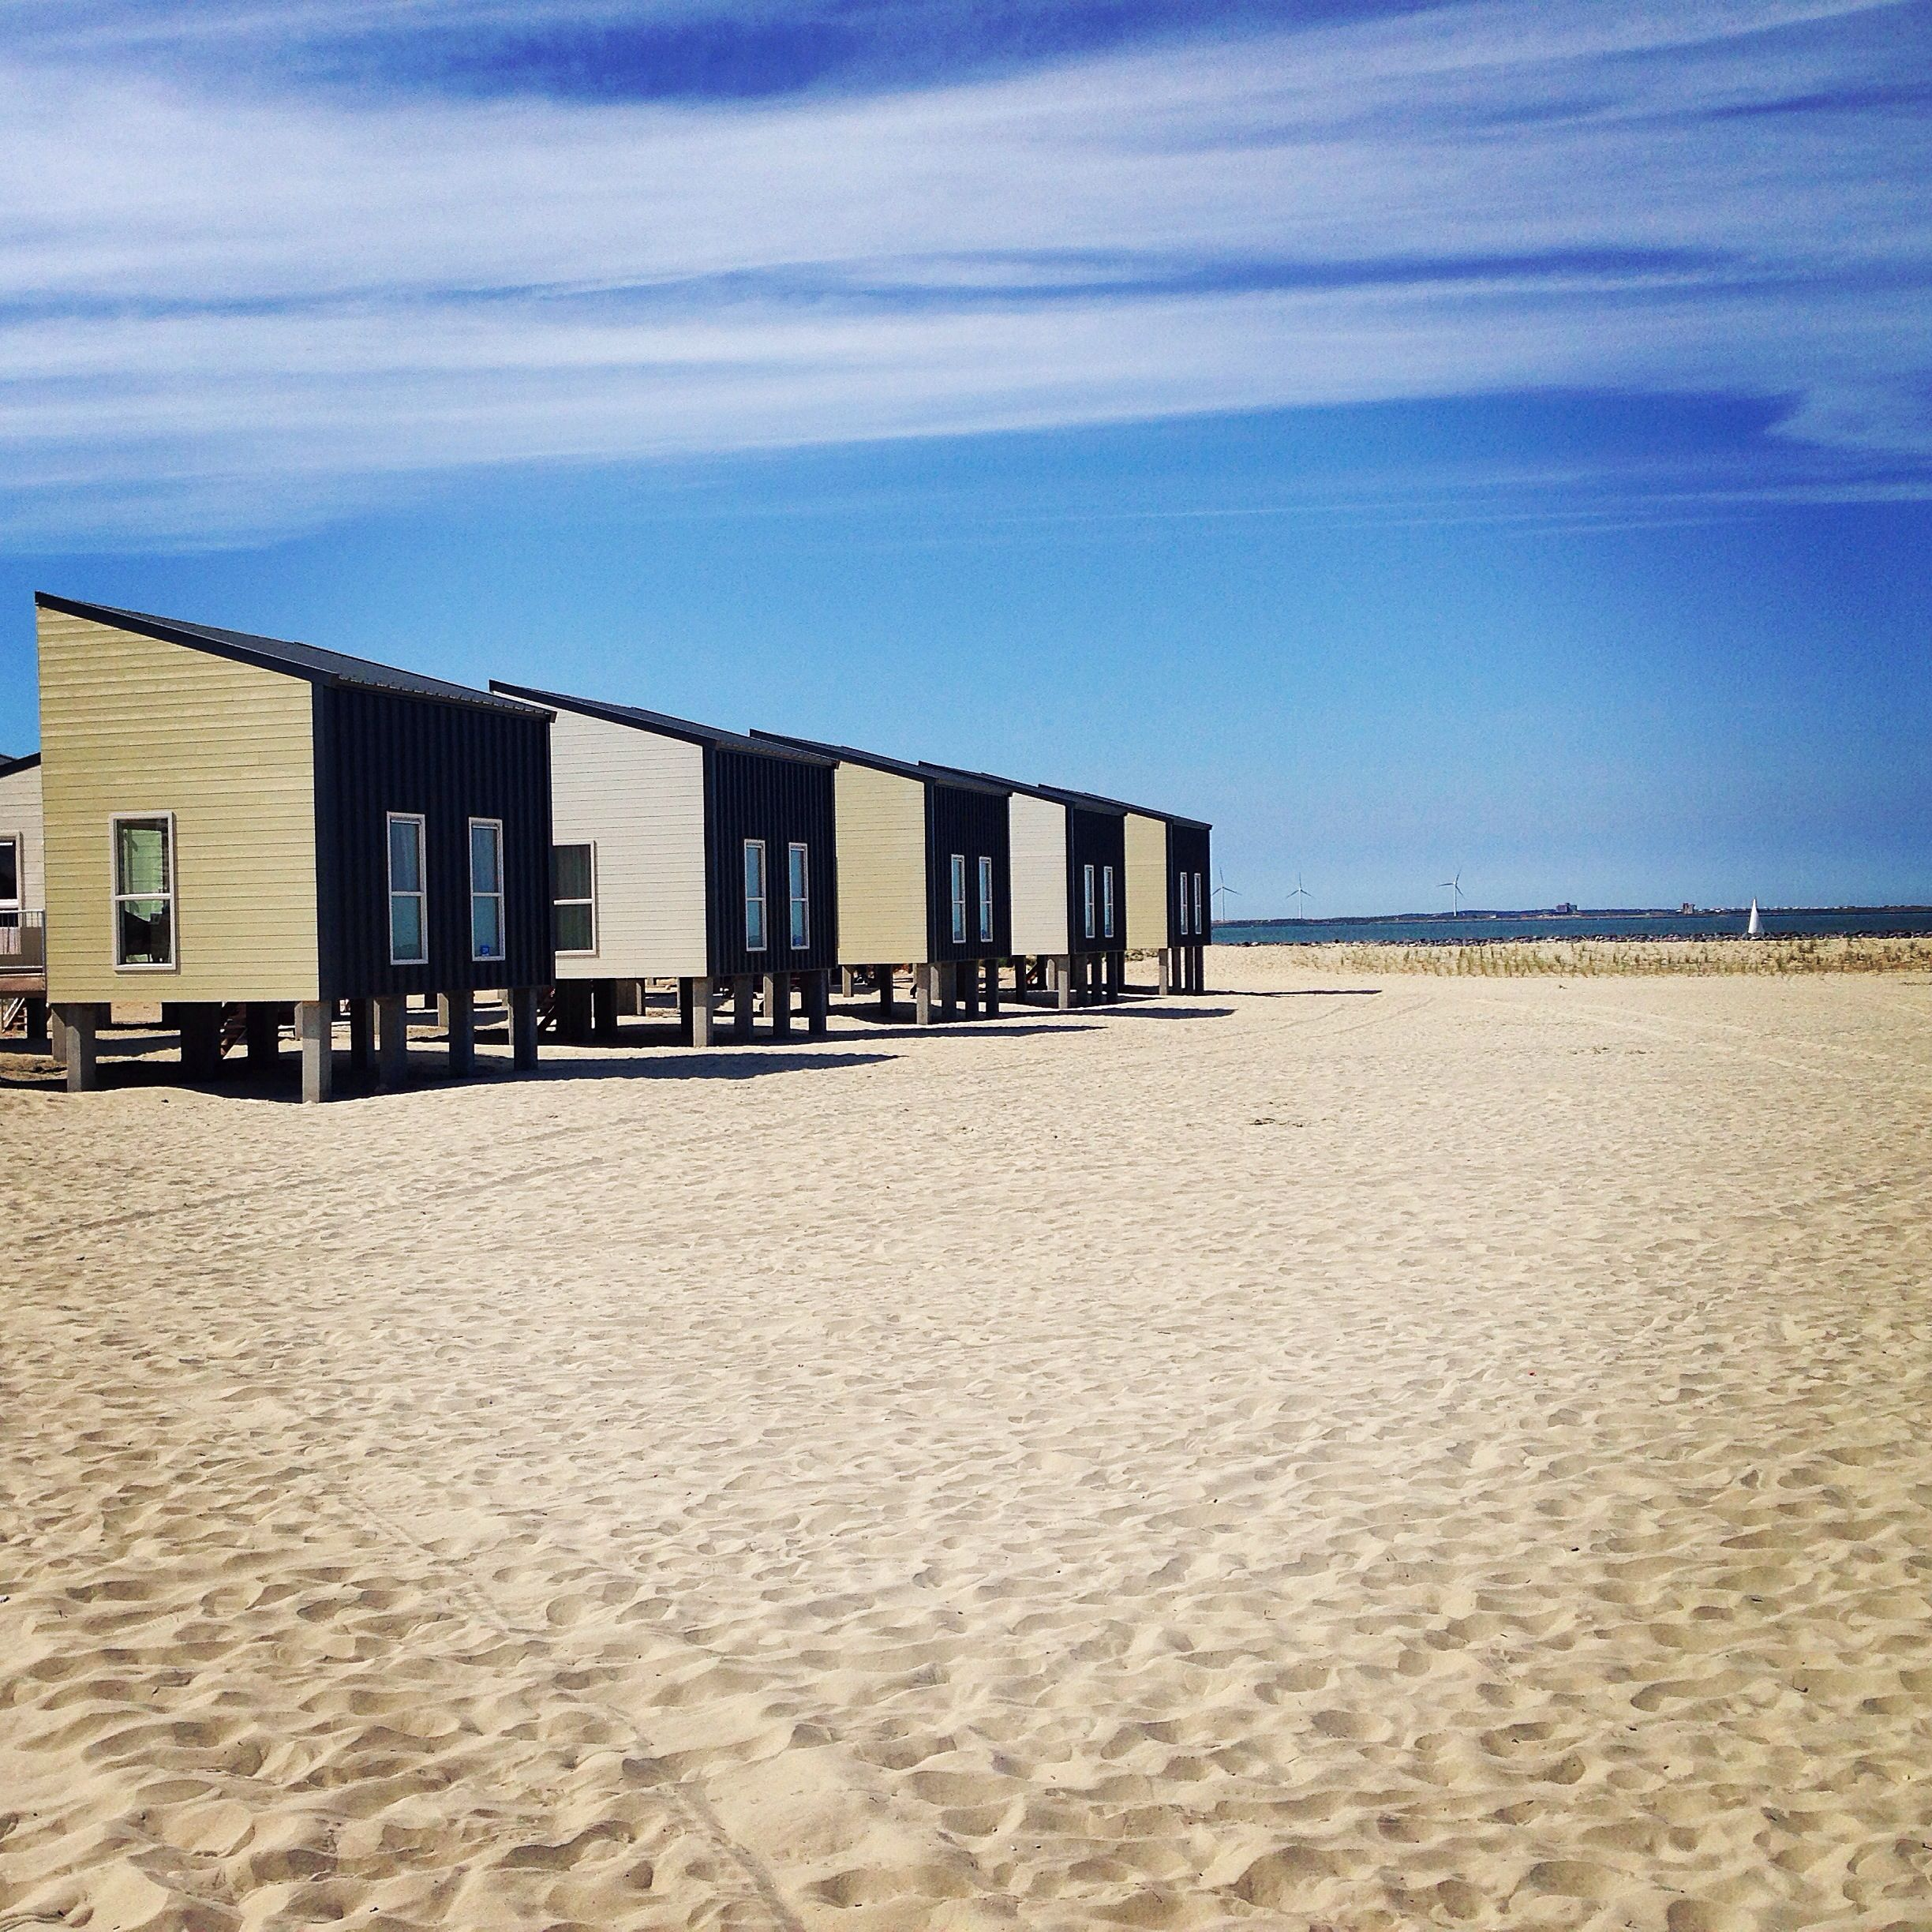 Holland Beach House Rentals: Holland Urlaub Direkt Am Meer Kamperland Roompot Beach